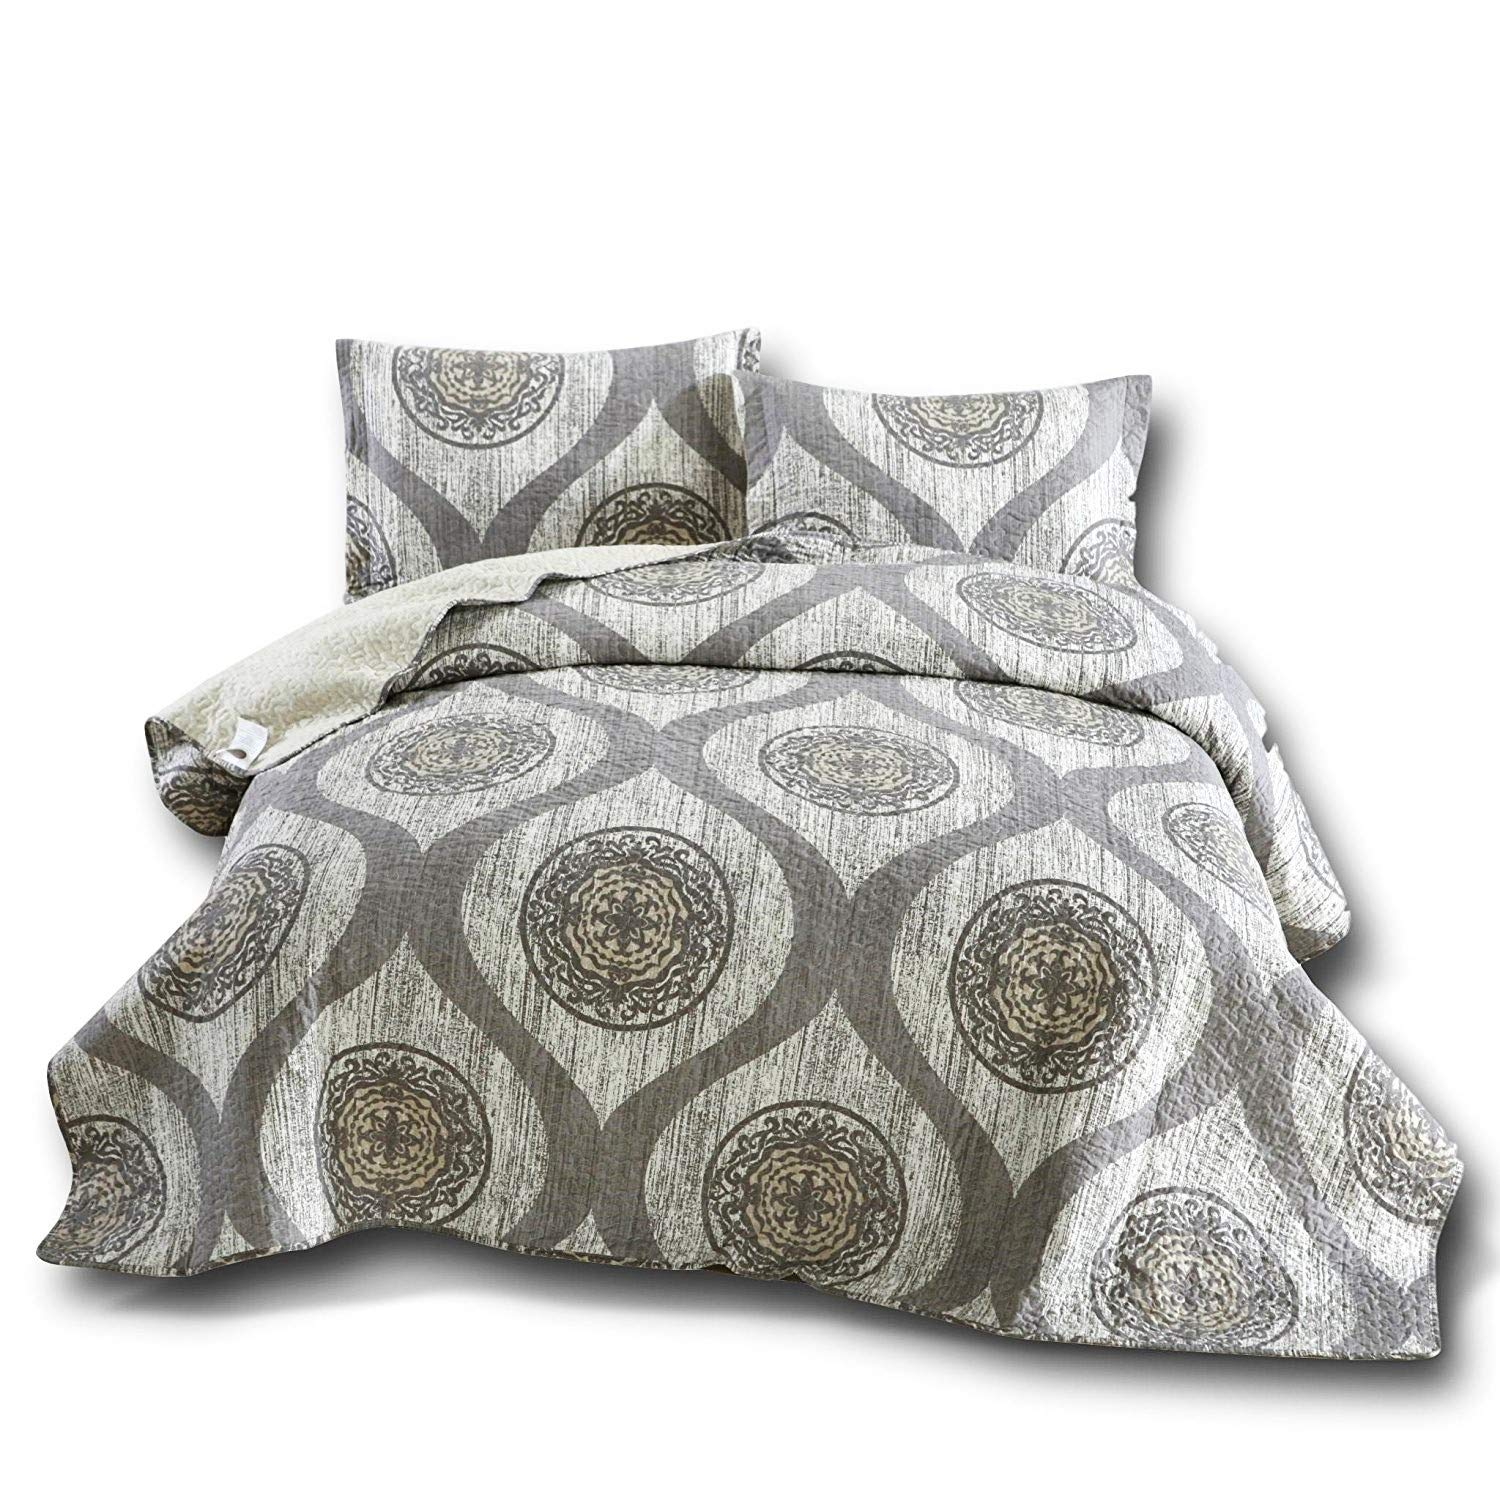 DaDa Bedding Rustic Medallion Bedspread - Distressed Mosaic Classical Reversible Quilted Coverlet - Cool Toned Multi Charcoal Grey - Cal King - 3-Pieces